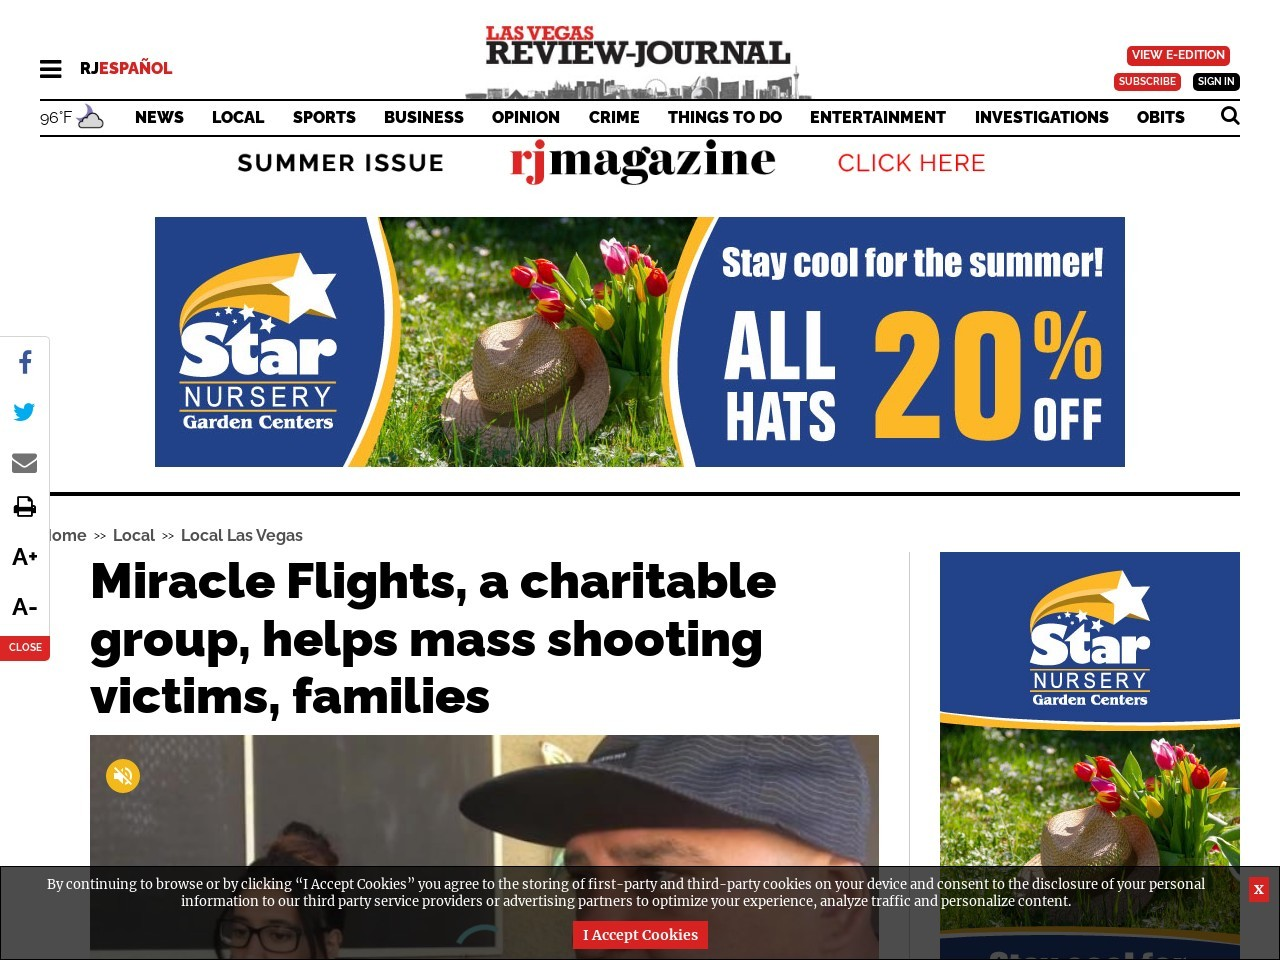 Miracle Flights, a charitable group, helps mass shooting victims, families